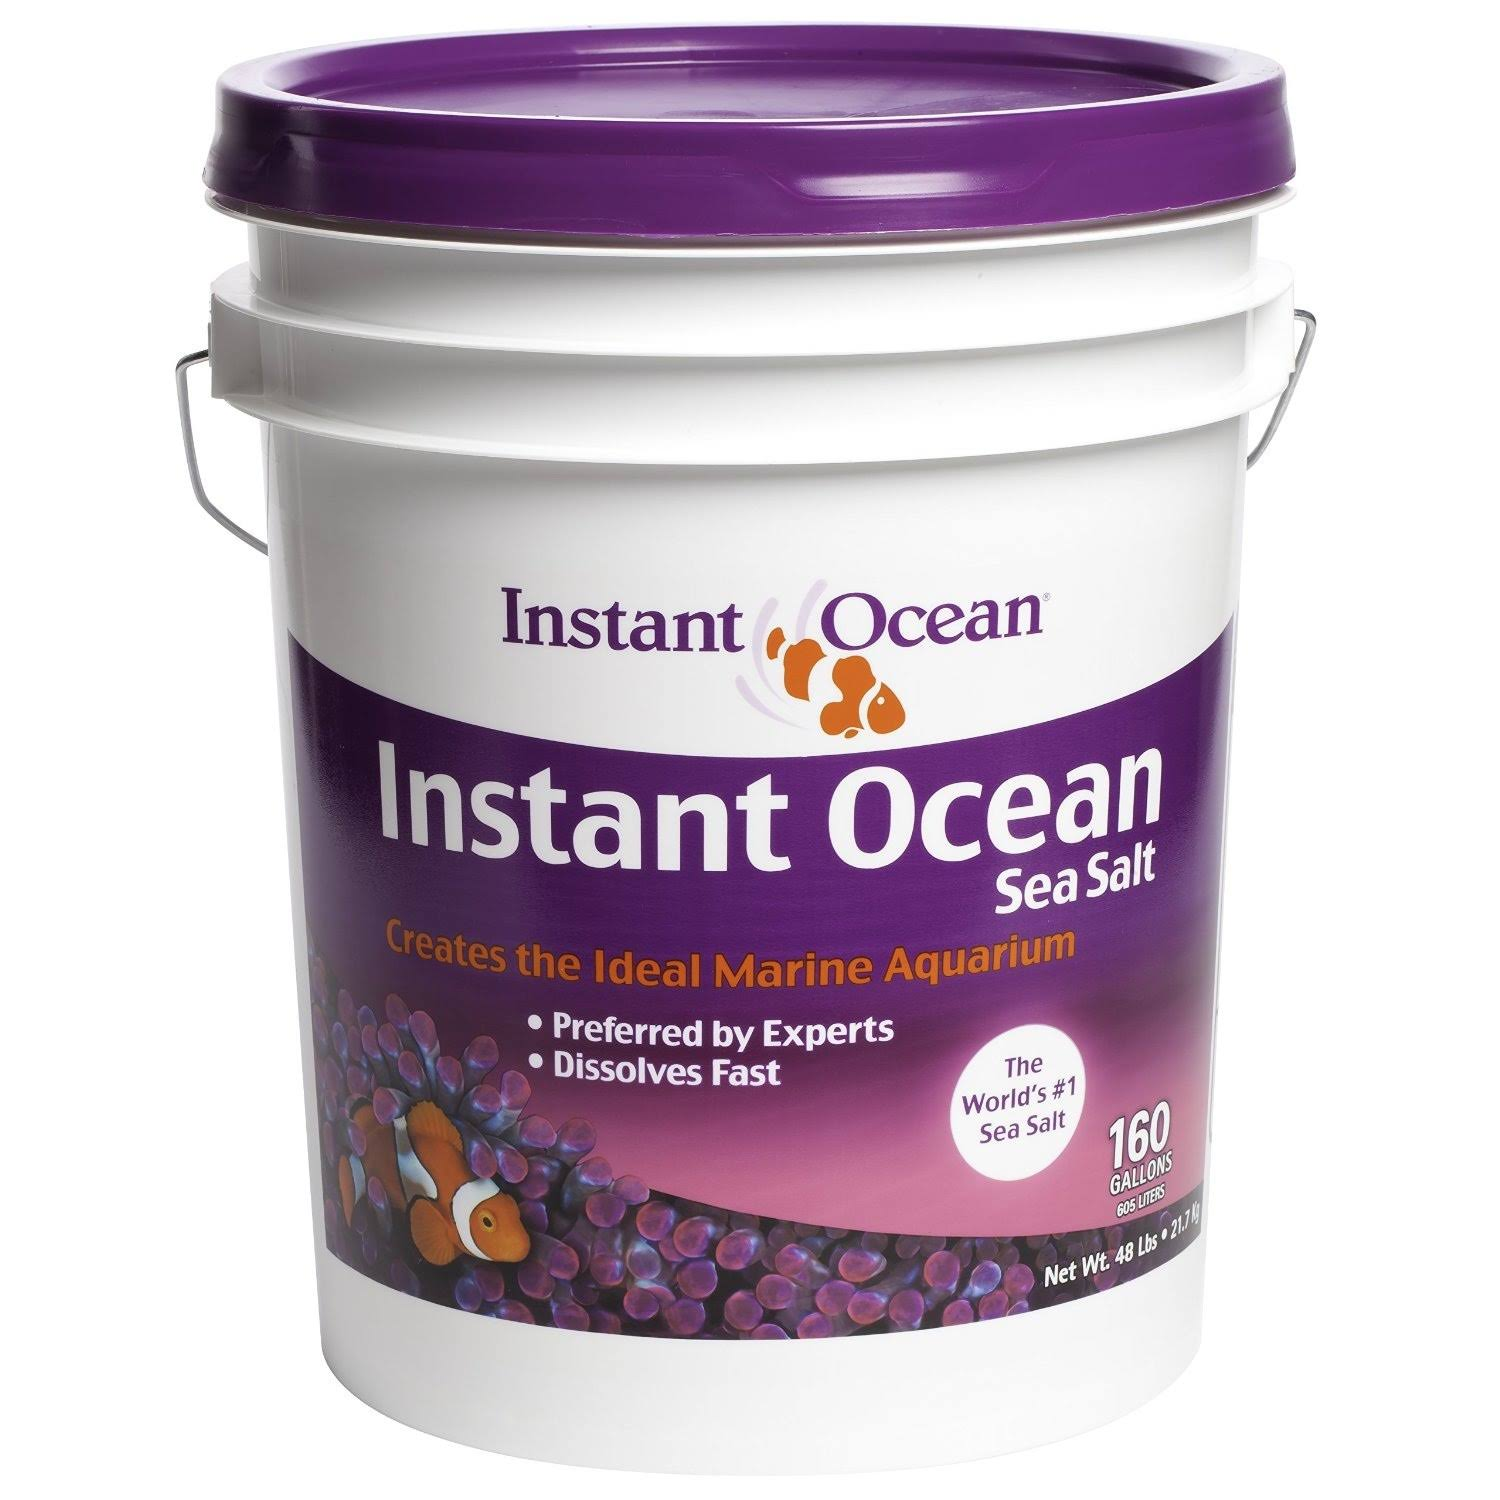 Instant Ocean Aquarium Sea Salt